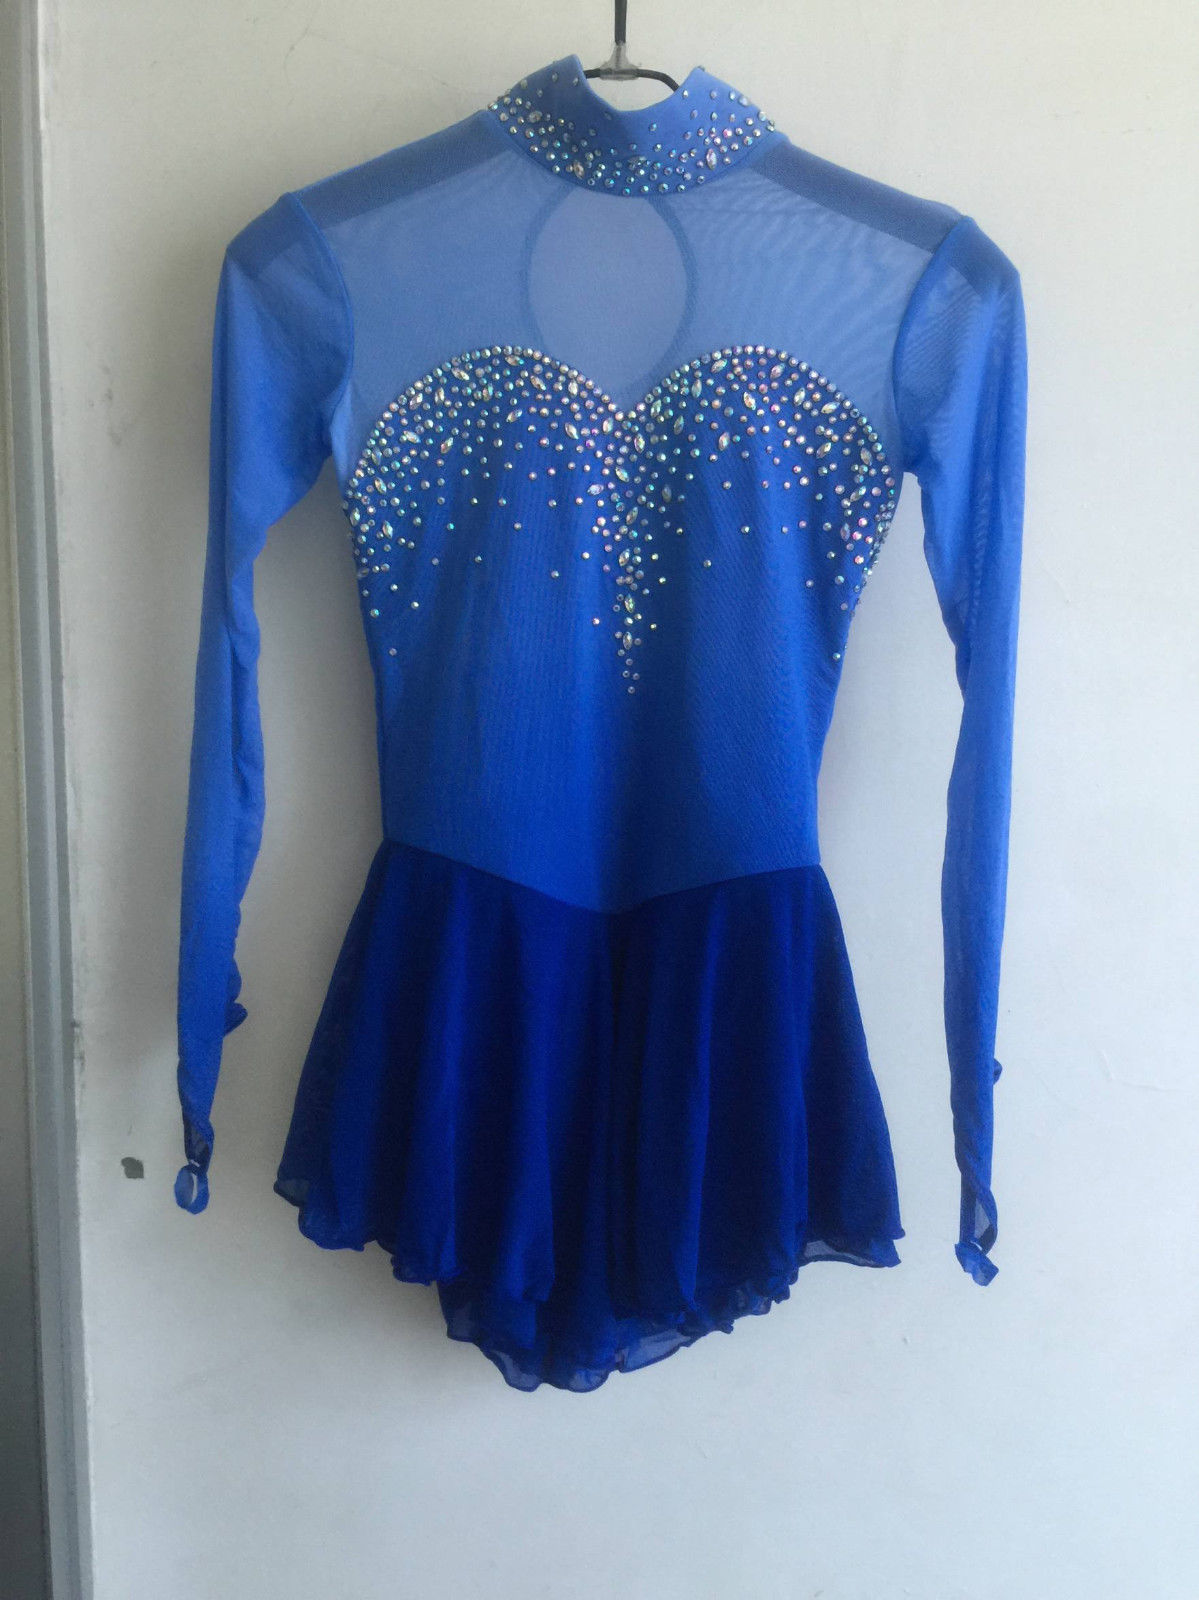 blue ice skating dress girls custom competition figure dress